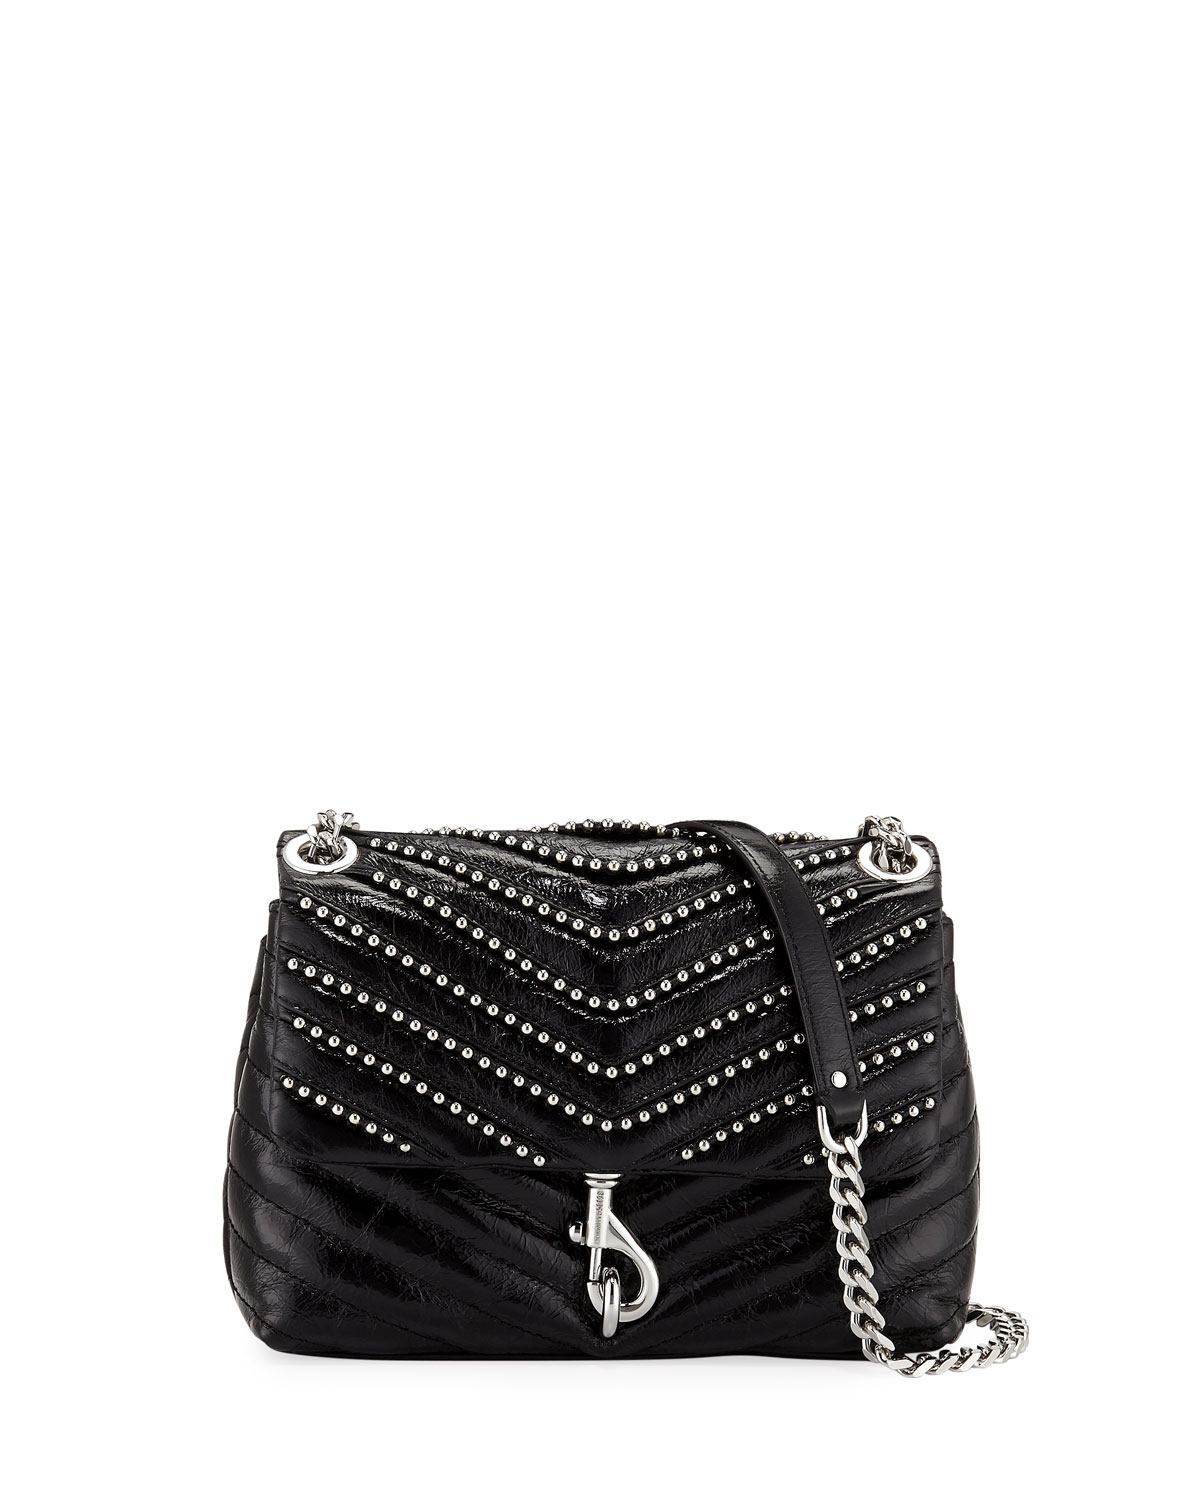 67d3185edca Edie Flap Studded Leather Crossbody Bag